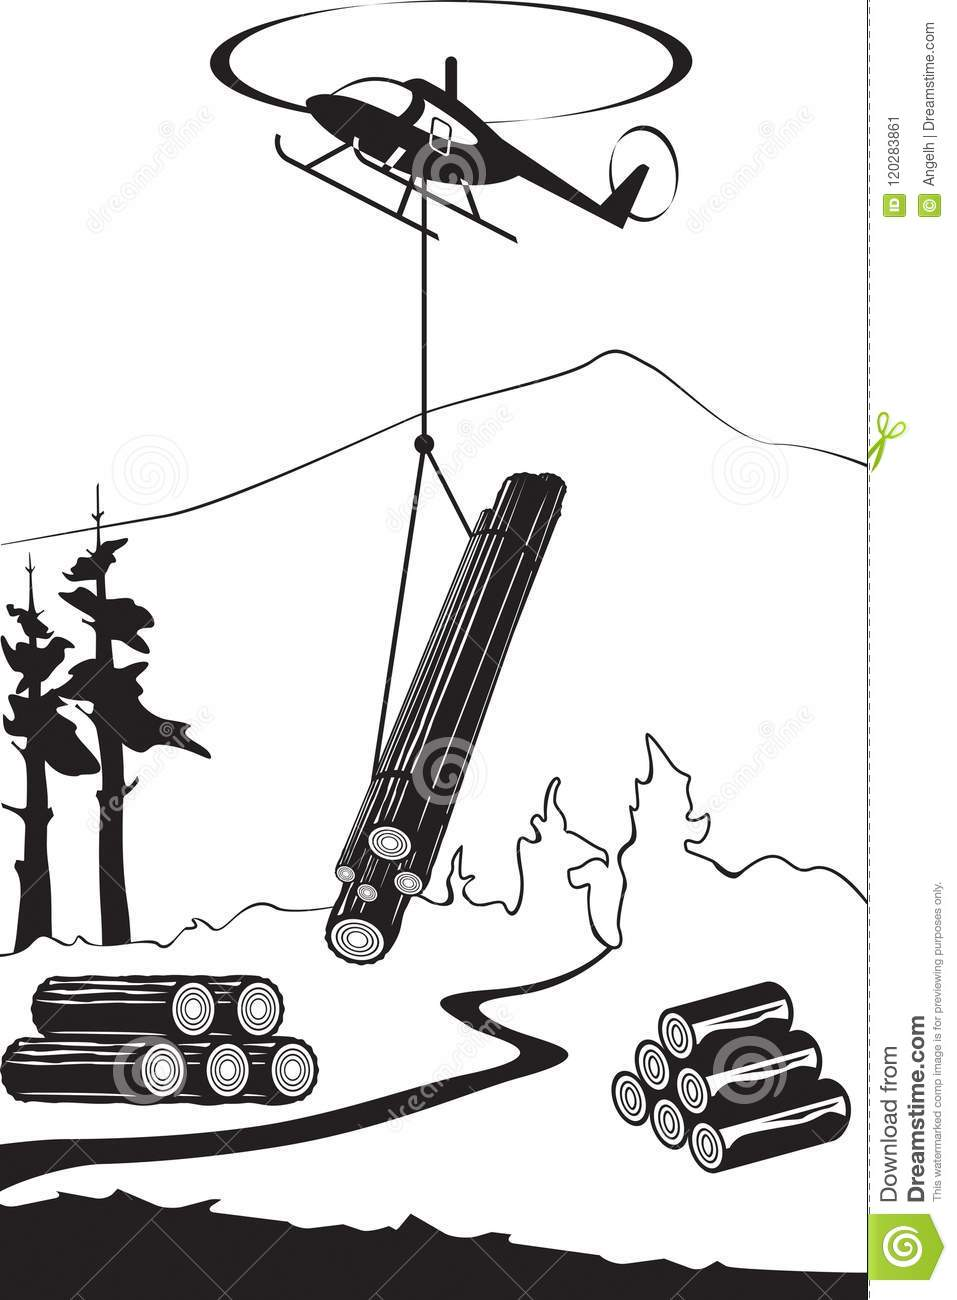 Helicopter Carry Wood Timbers In The Forest Stock Vector